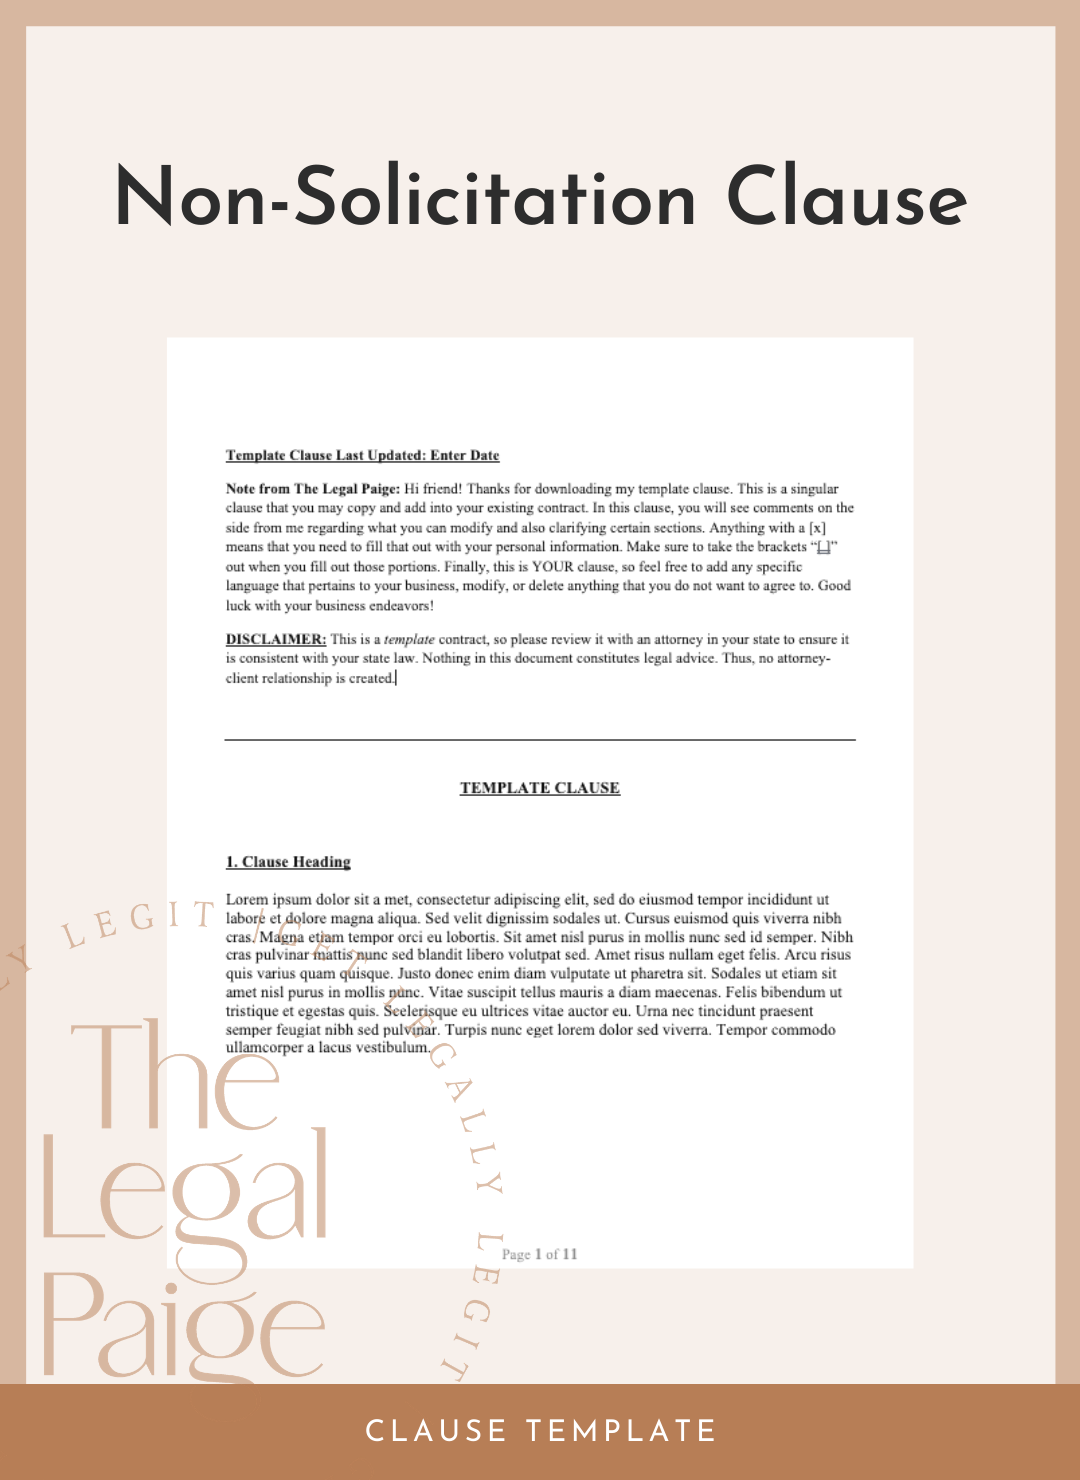 Non-Solicitation Clause